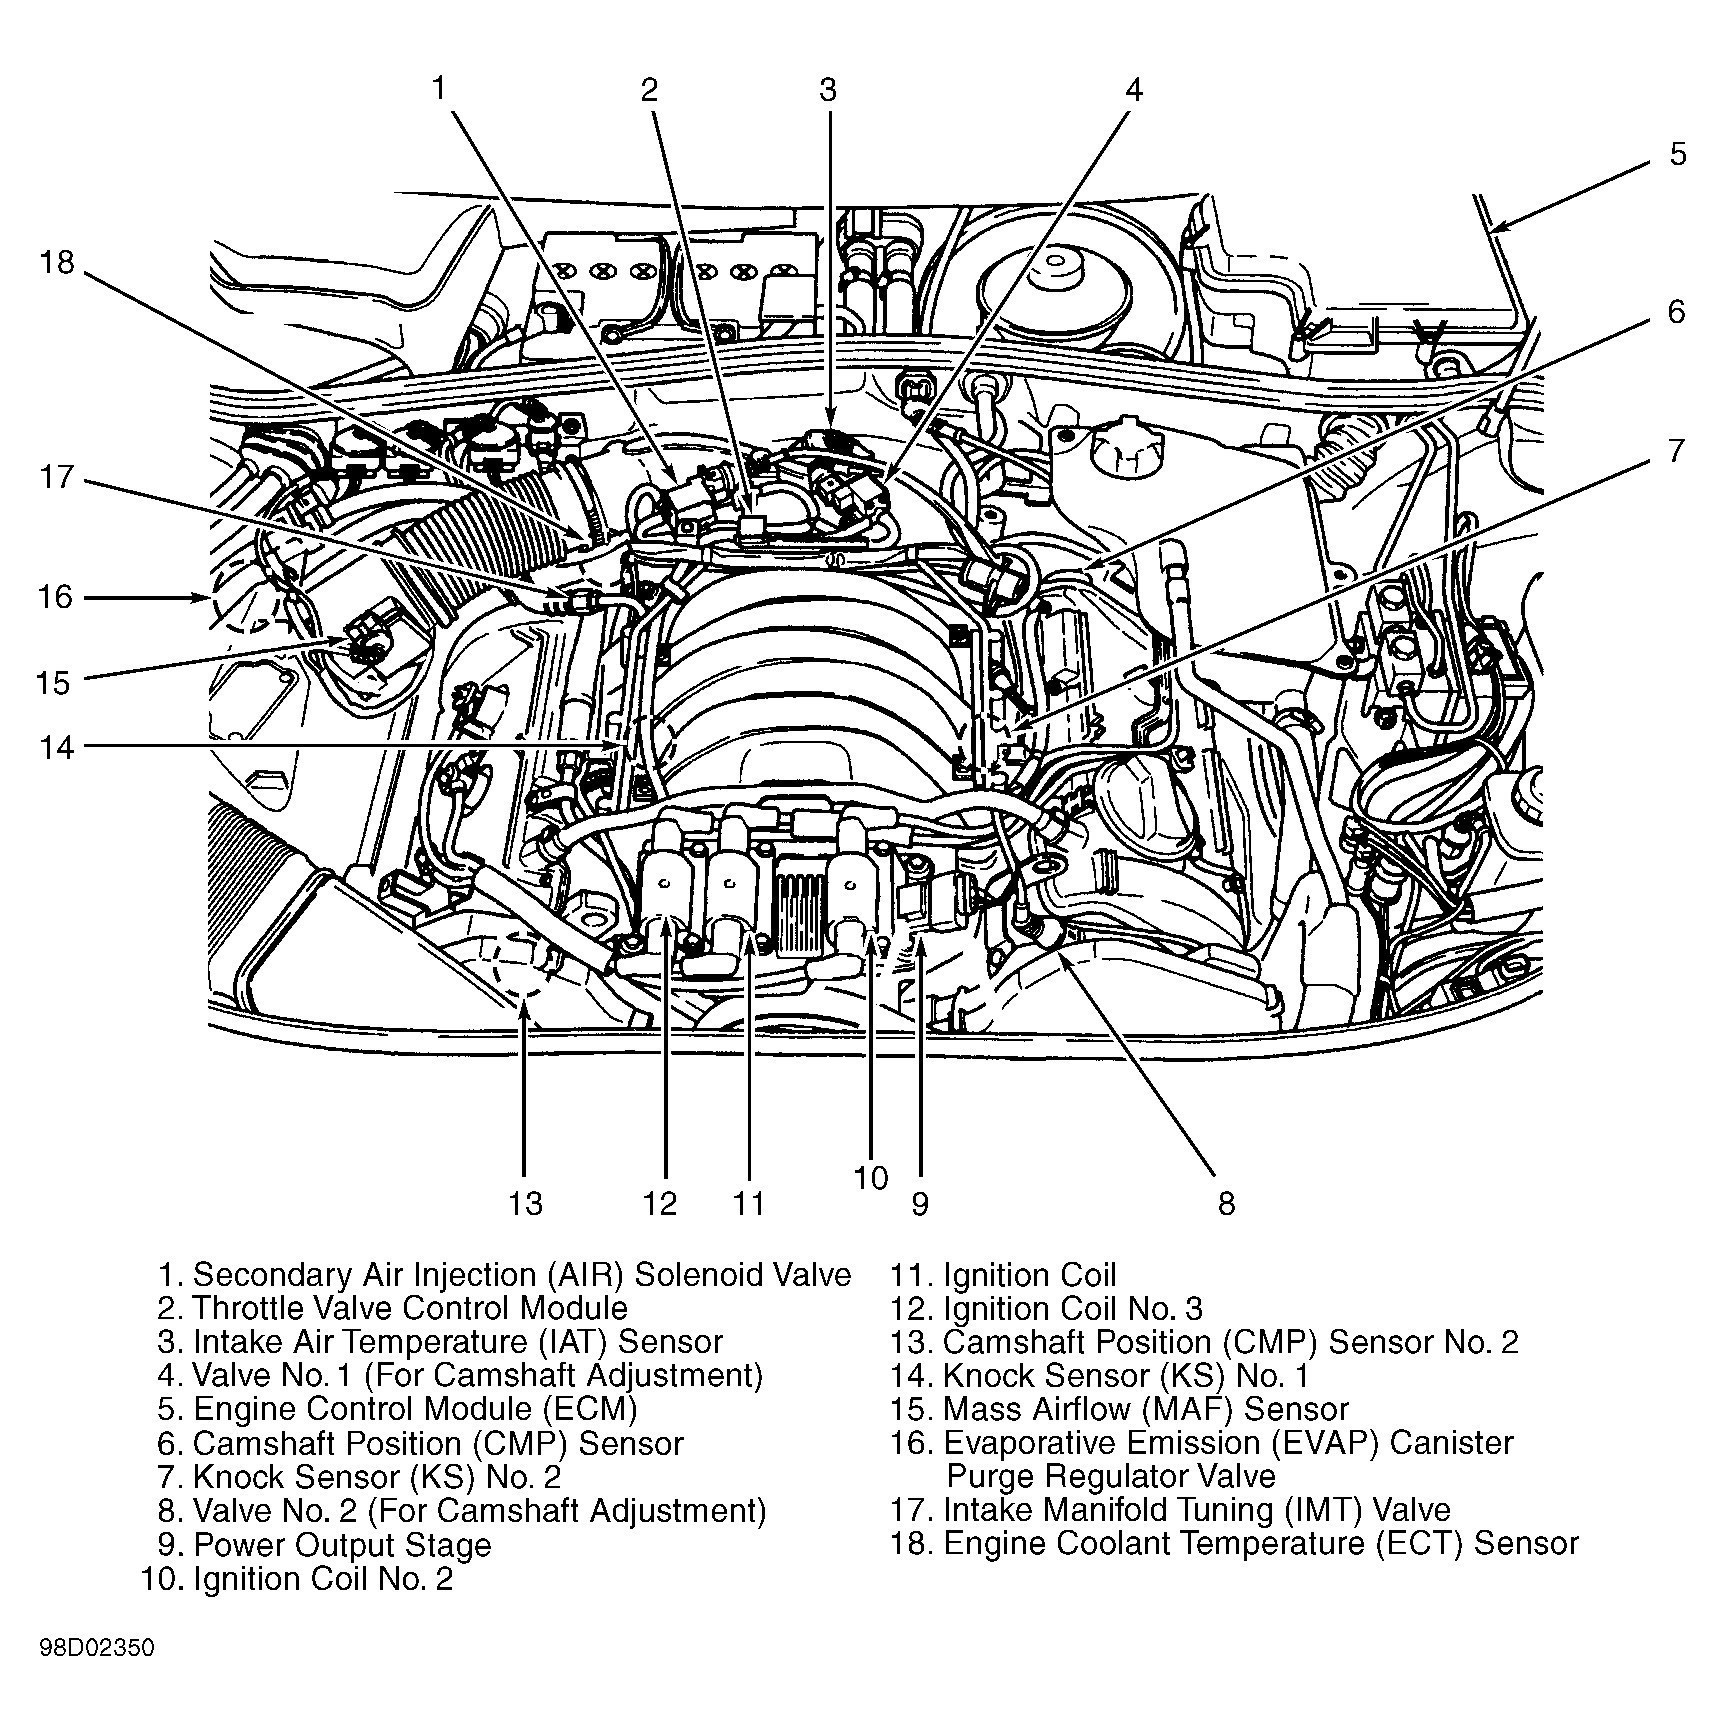 2002 isuzu Rodeo Engine Diagram Bmw 3 0 Engine Diagram Premium Wiring Diagram Design Of 2002 isuzu Rodeo Engine Diagram